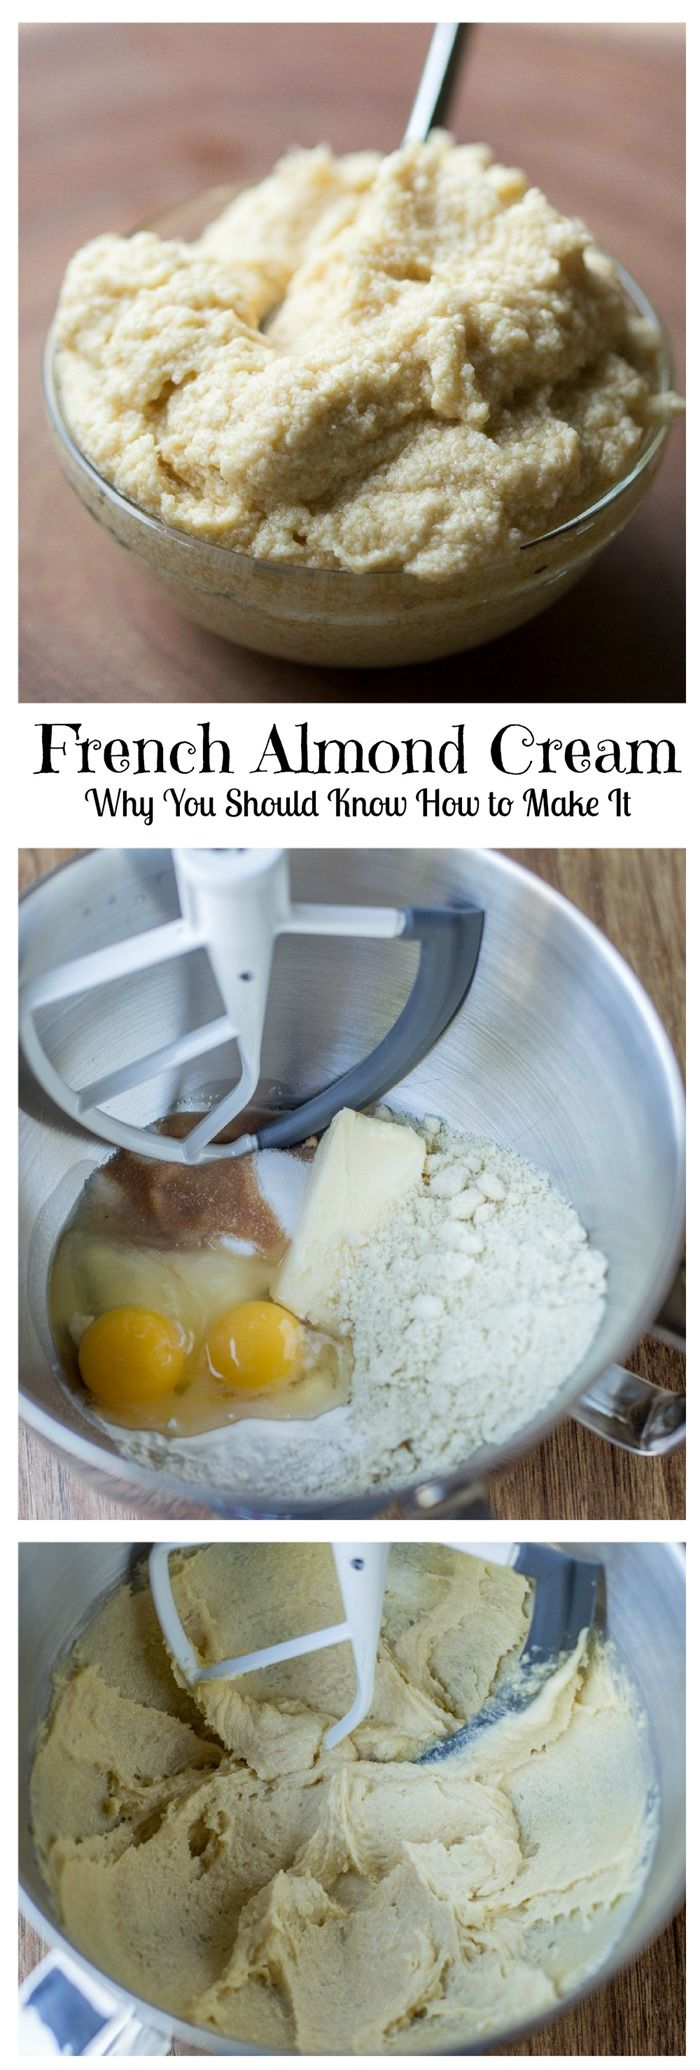 125 g unsalted butter, room temperature  1/2 cup granulated sugar  2 eggs, room temperature,  3/4 cup ground almonds  2 tablespoons all-purpose flour  1 tablespoon vanilla extract  1 teaspoon almond extract (optional)